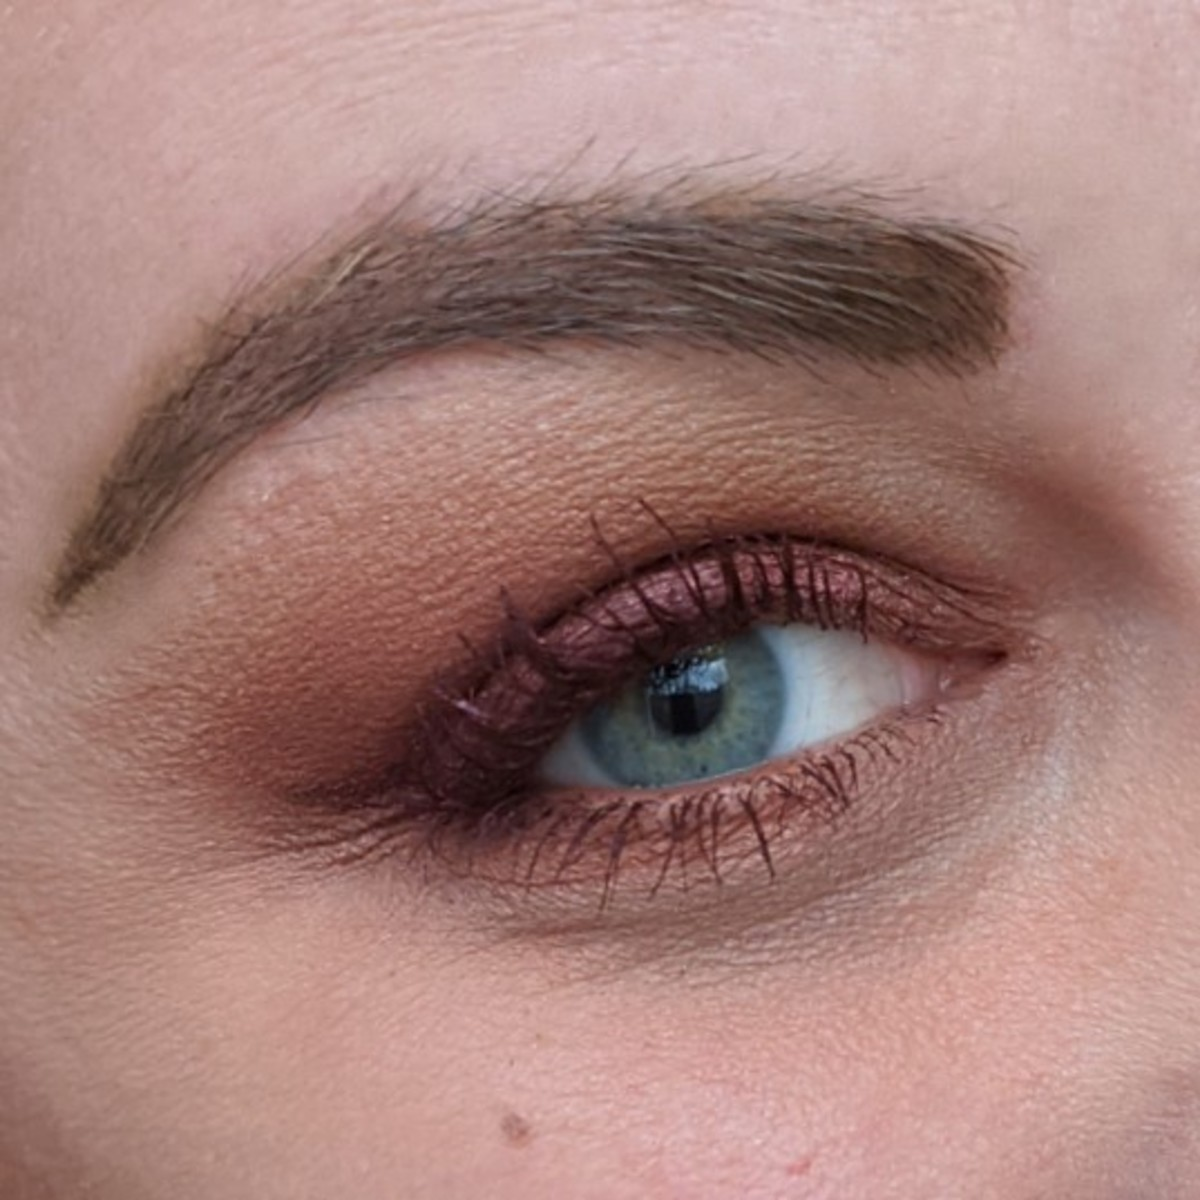 Here's me with a monochromatic red and burgundy makeup look using the Urban Decay Naked Heat Palette and L'Oreal Voluminizing Mascara in Burgundy.